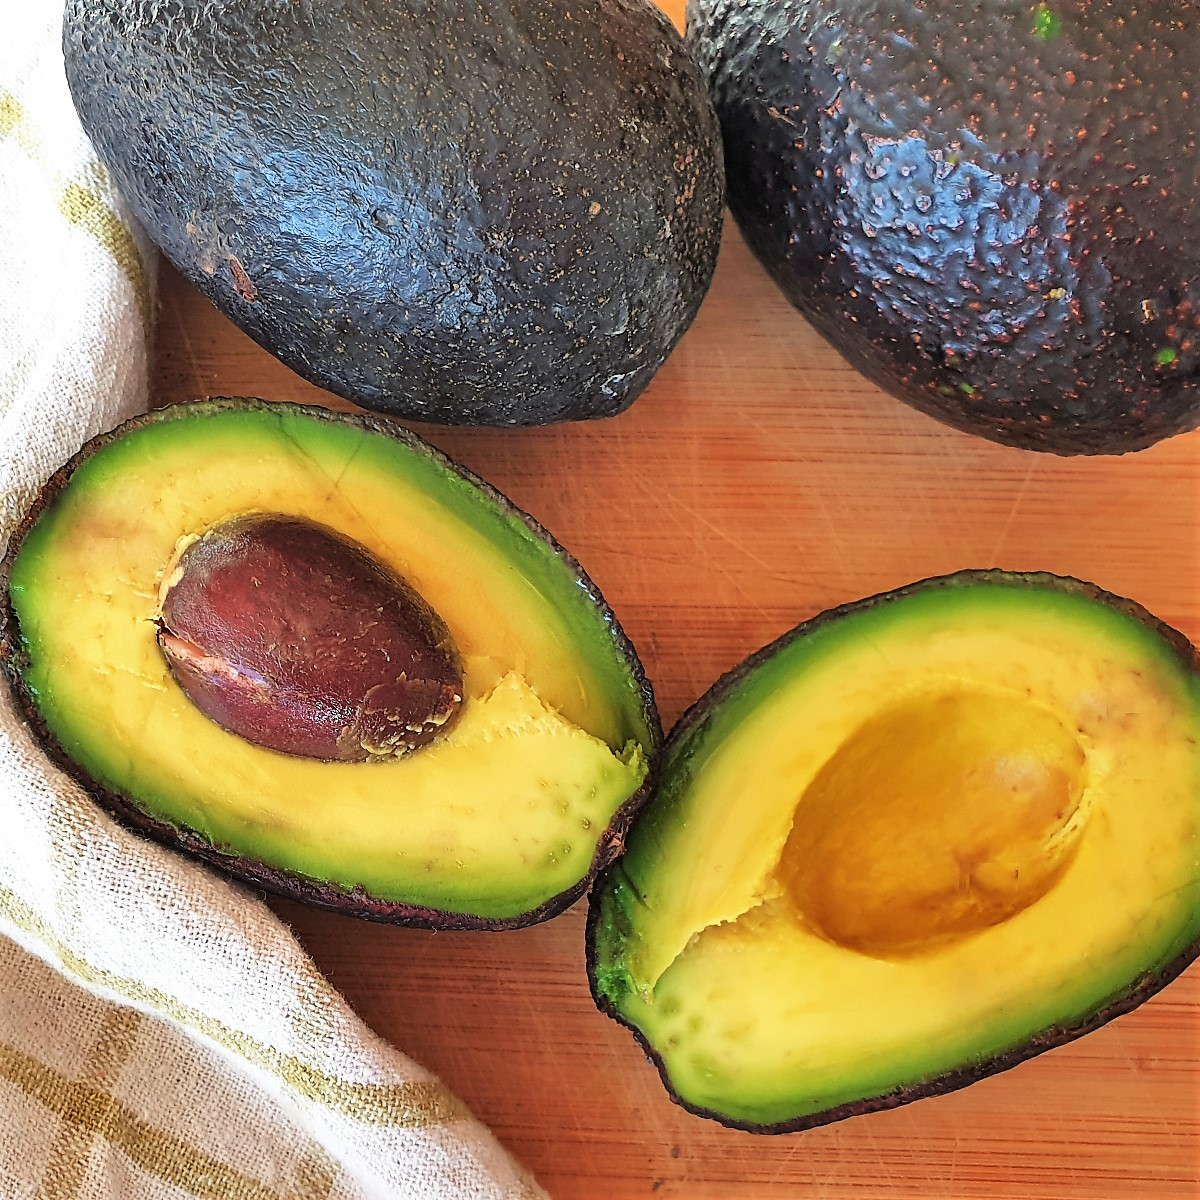 Three avocados - two whole one and one cut in half.